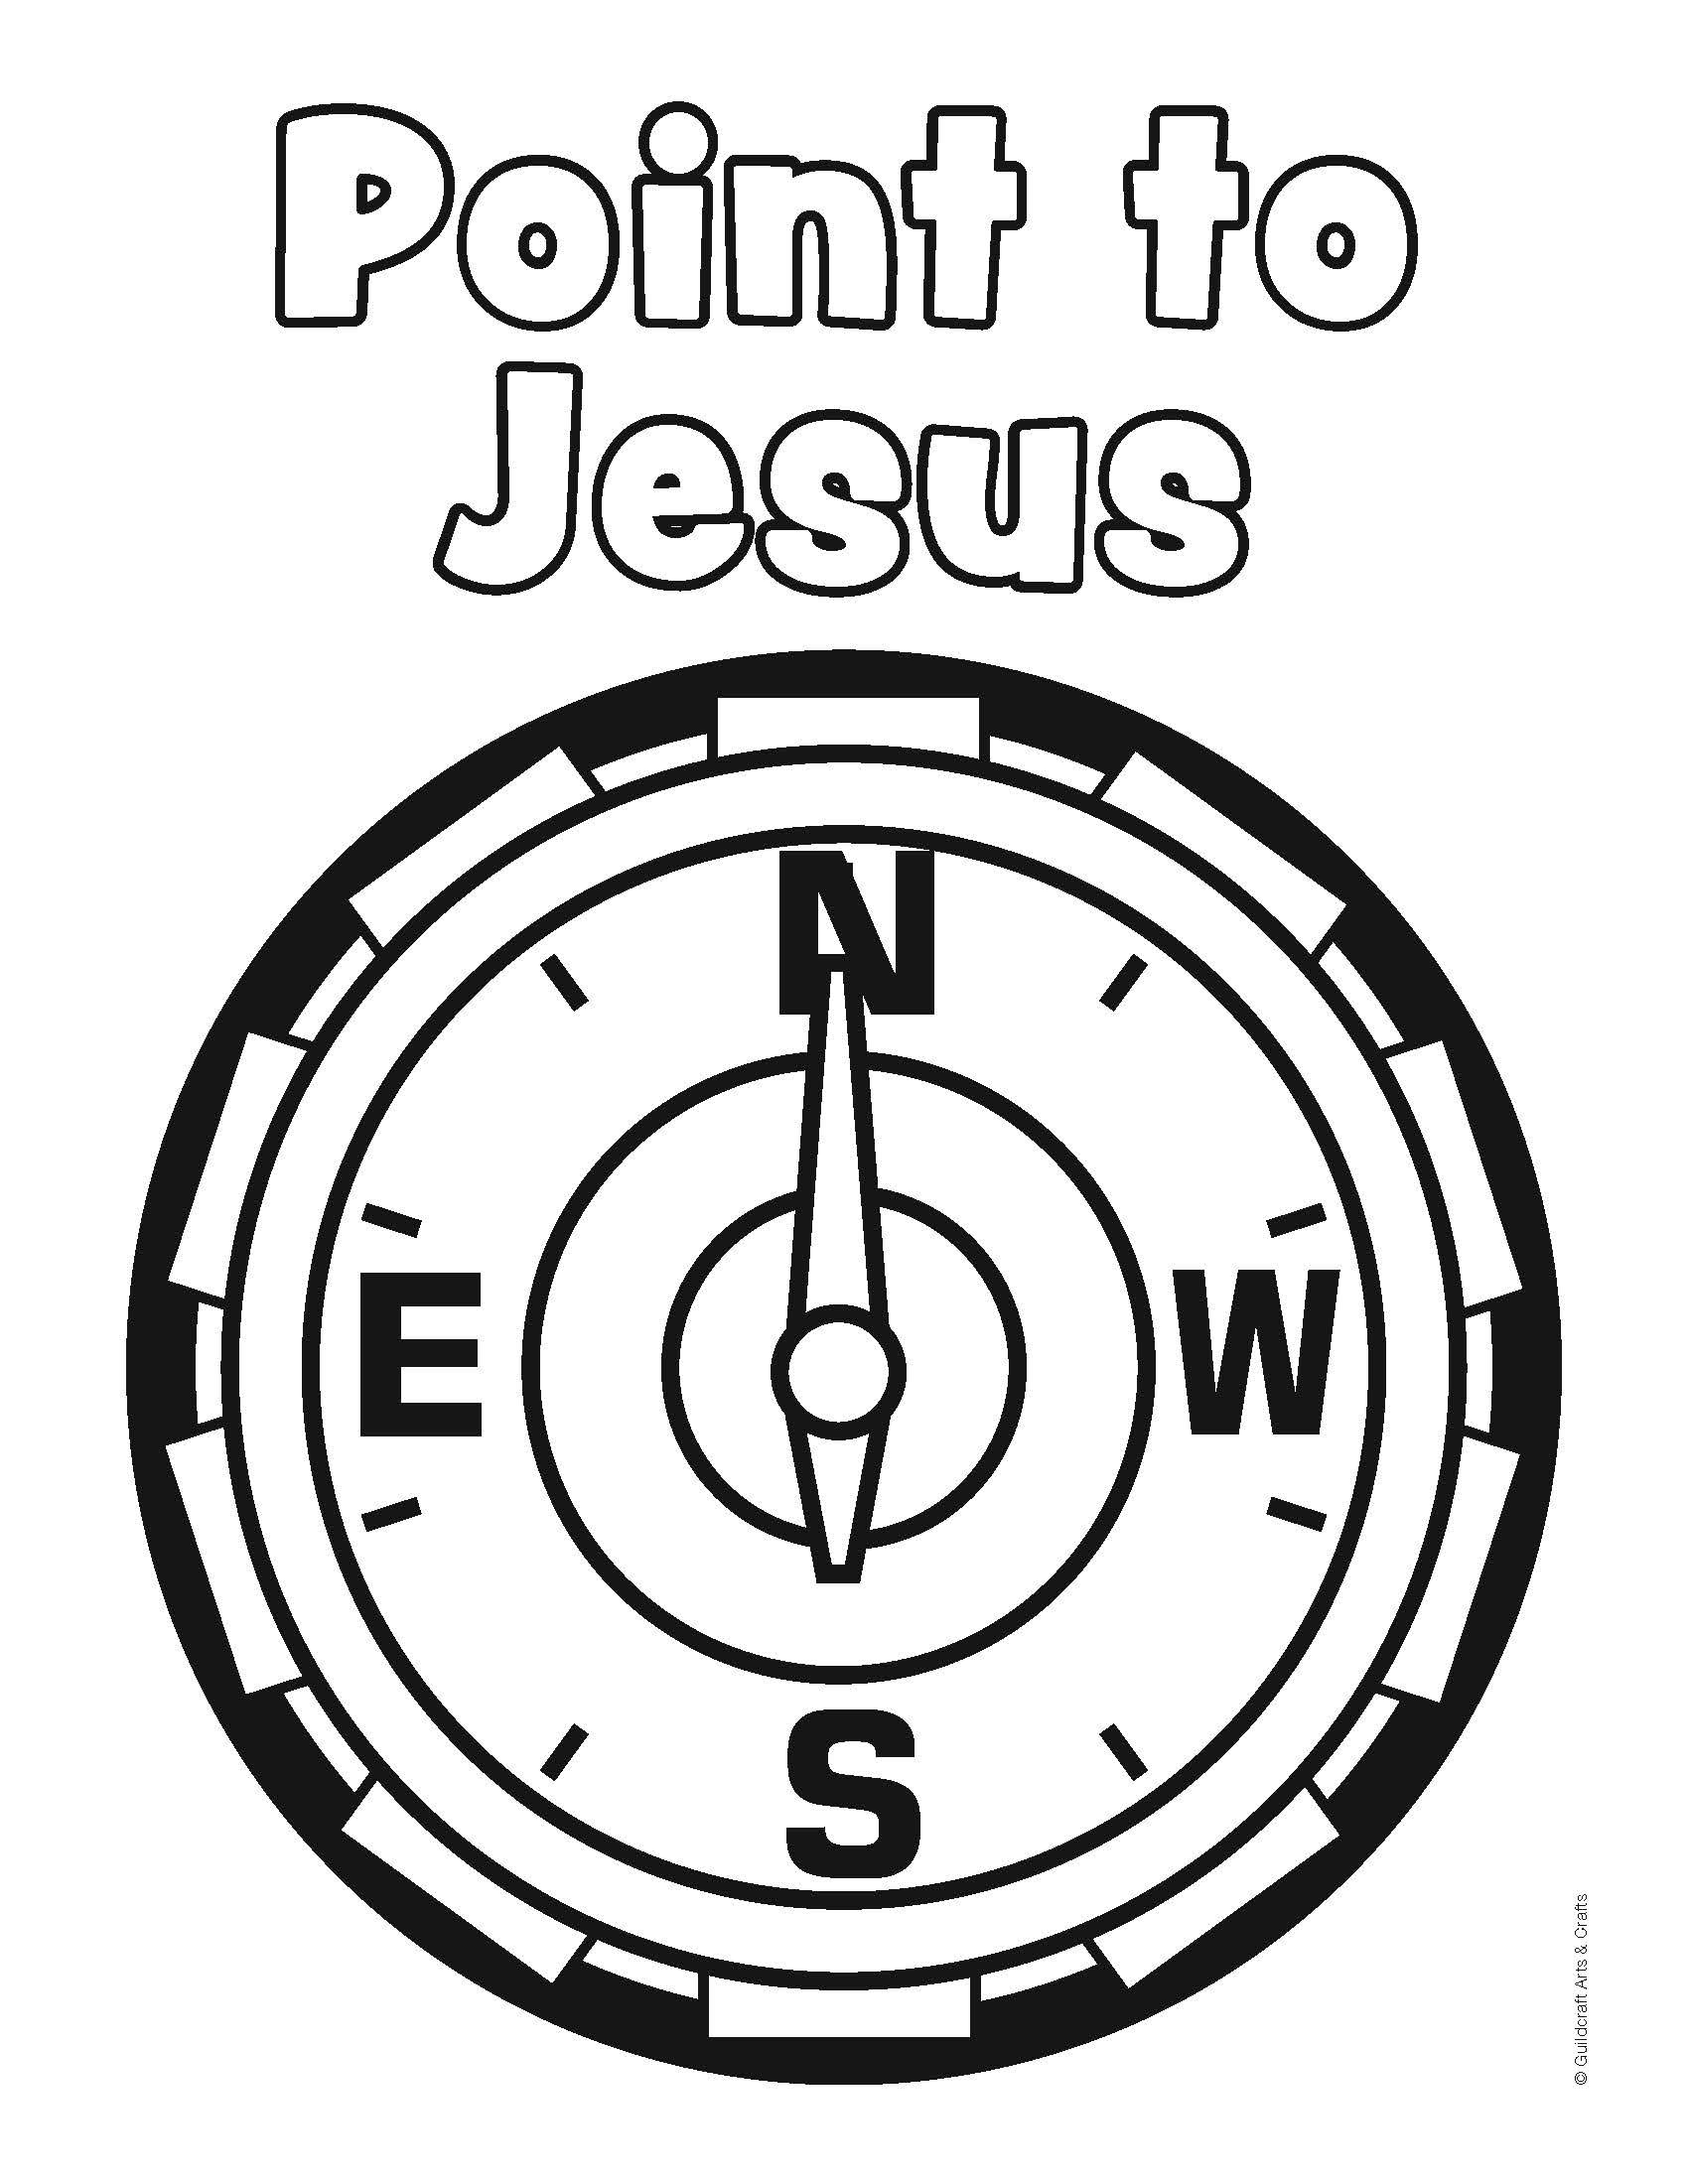 Free coloring pages vbs - Vbs National Park Coloring Sheet Free Coloring Pages For Various Vbs Themes